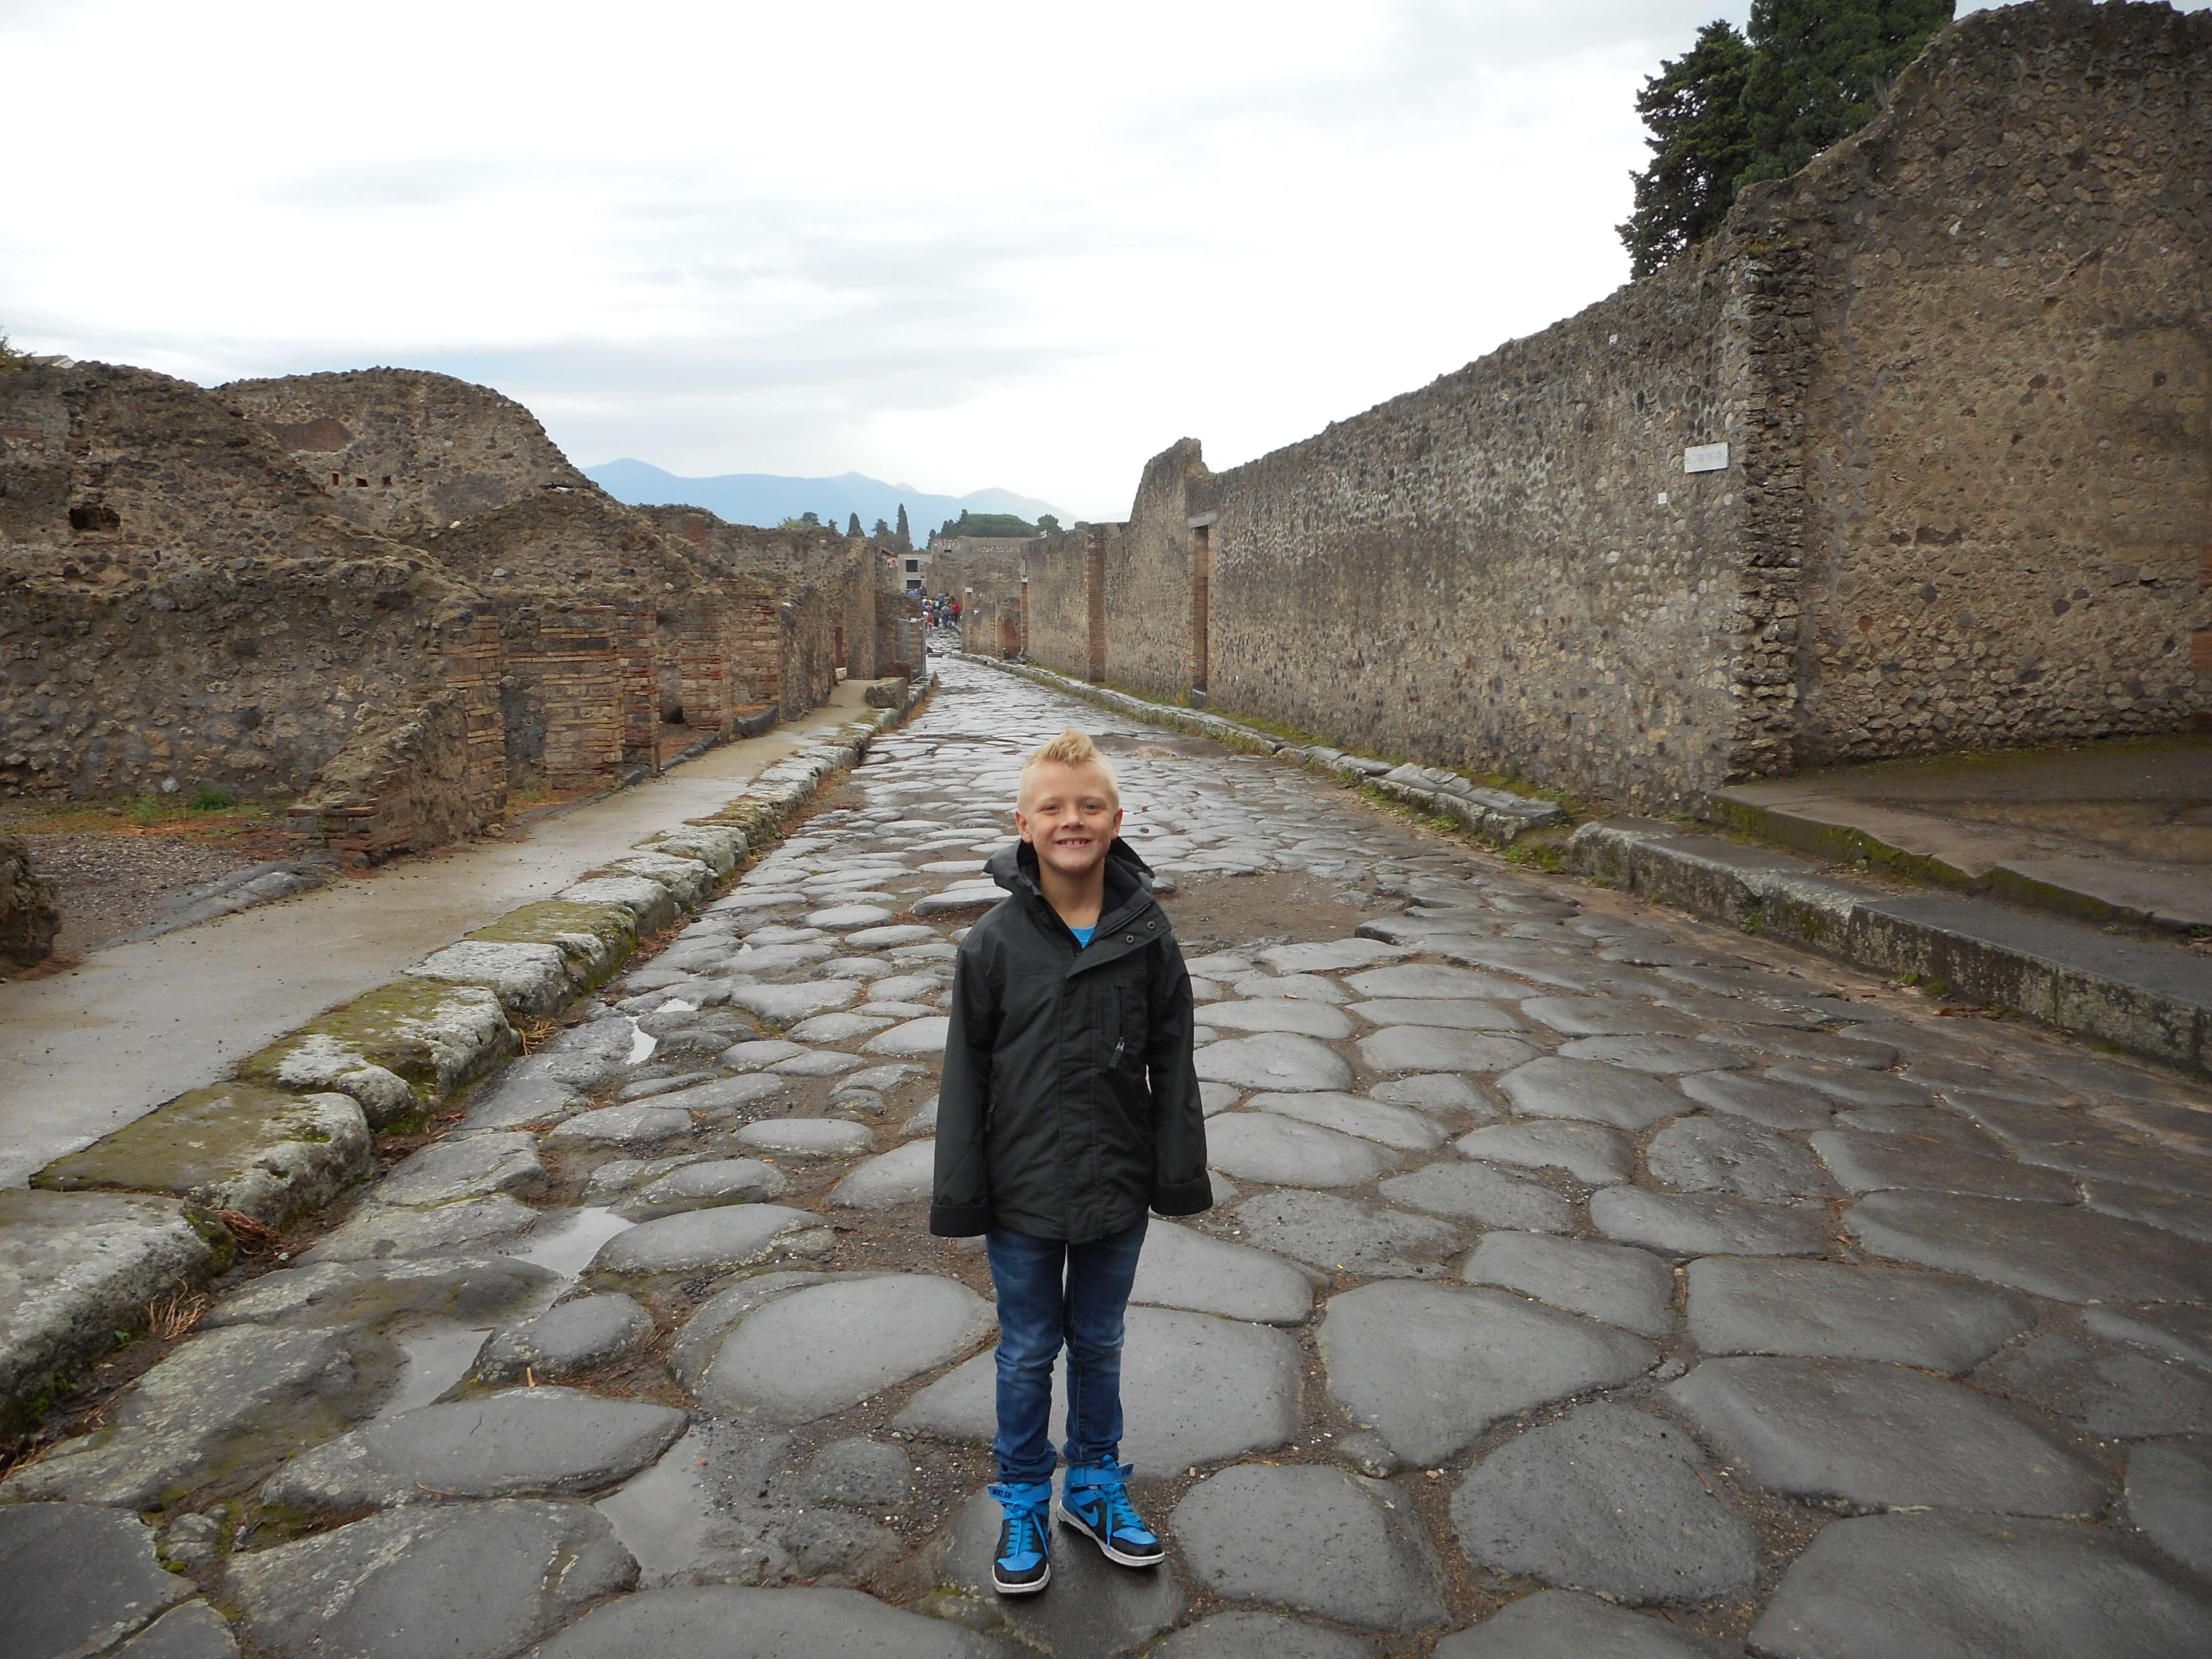 Aiden standing on the stone lined street and posing for a picture among the ruins of Pompeii.